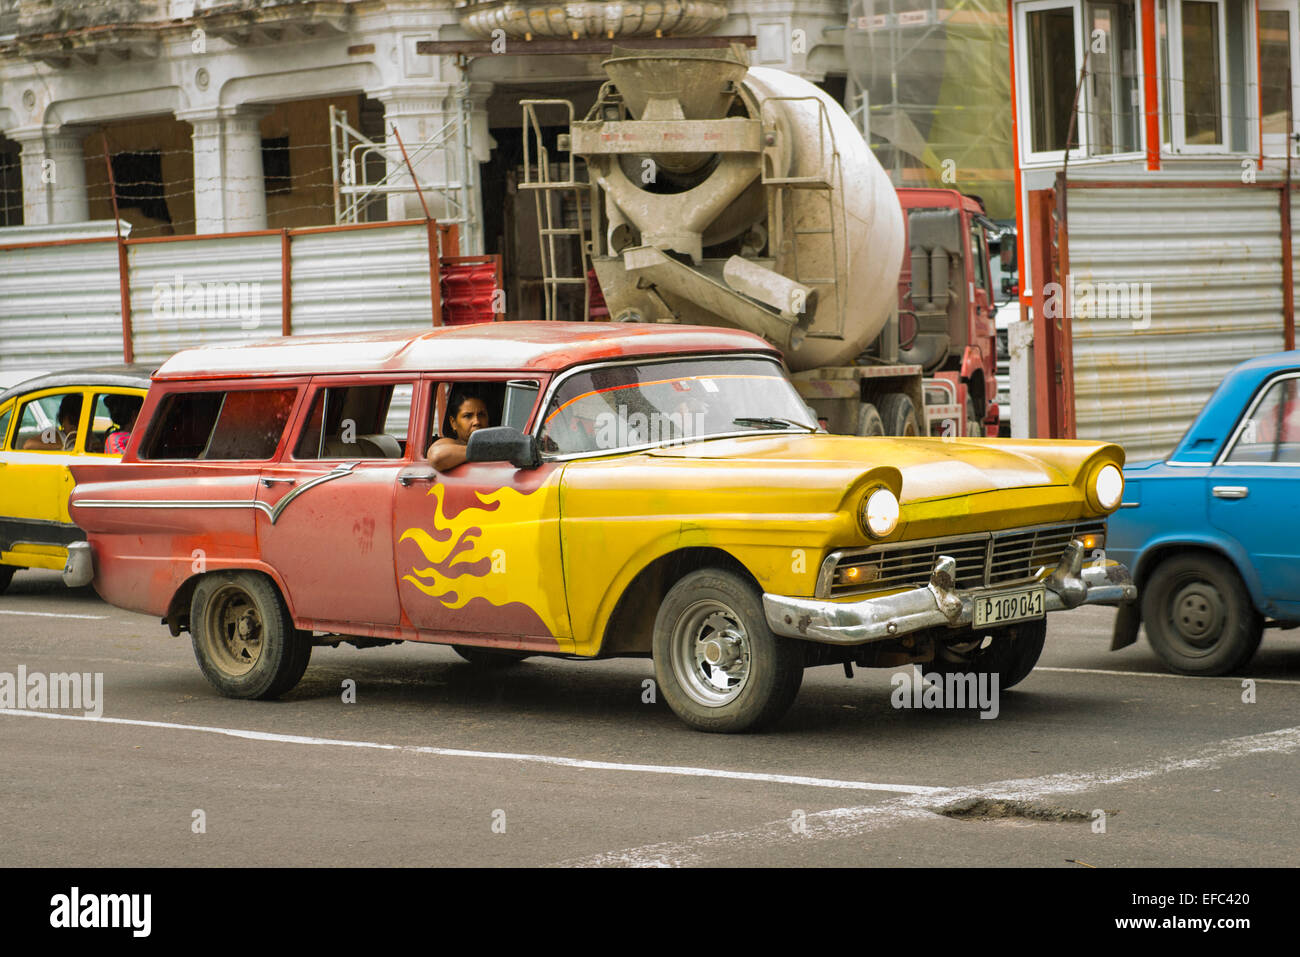 Old 1950s Us Classic Car Stock Photos & Old 1950s Us Classic Car ...